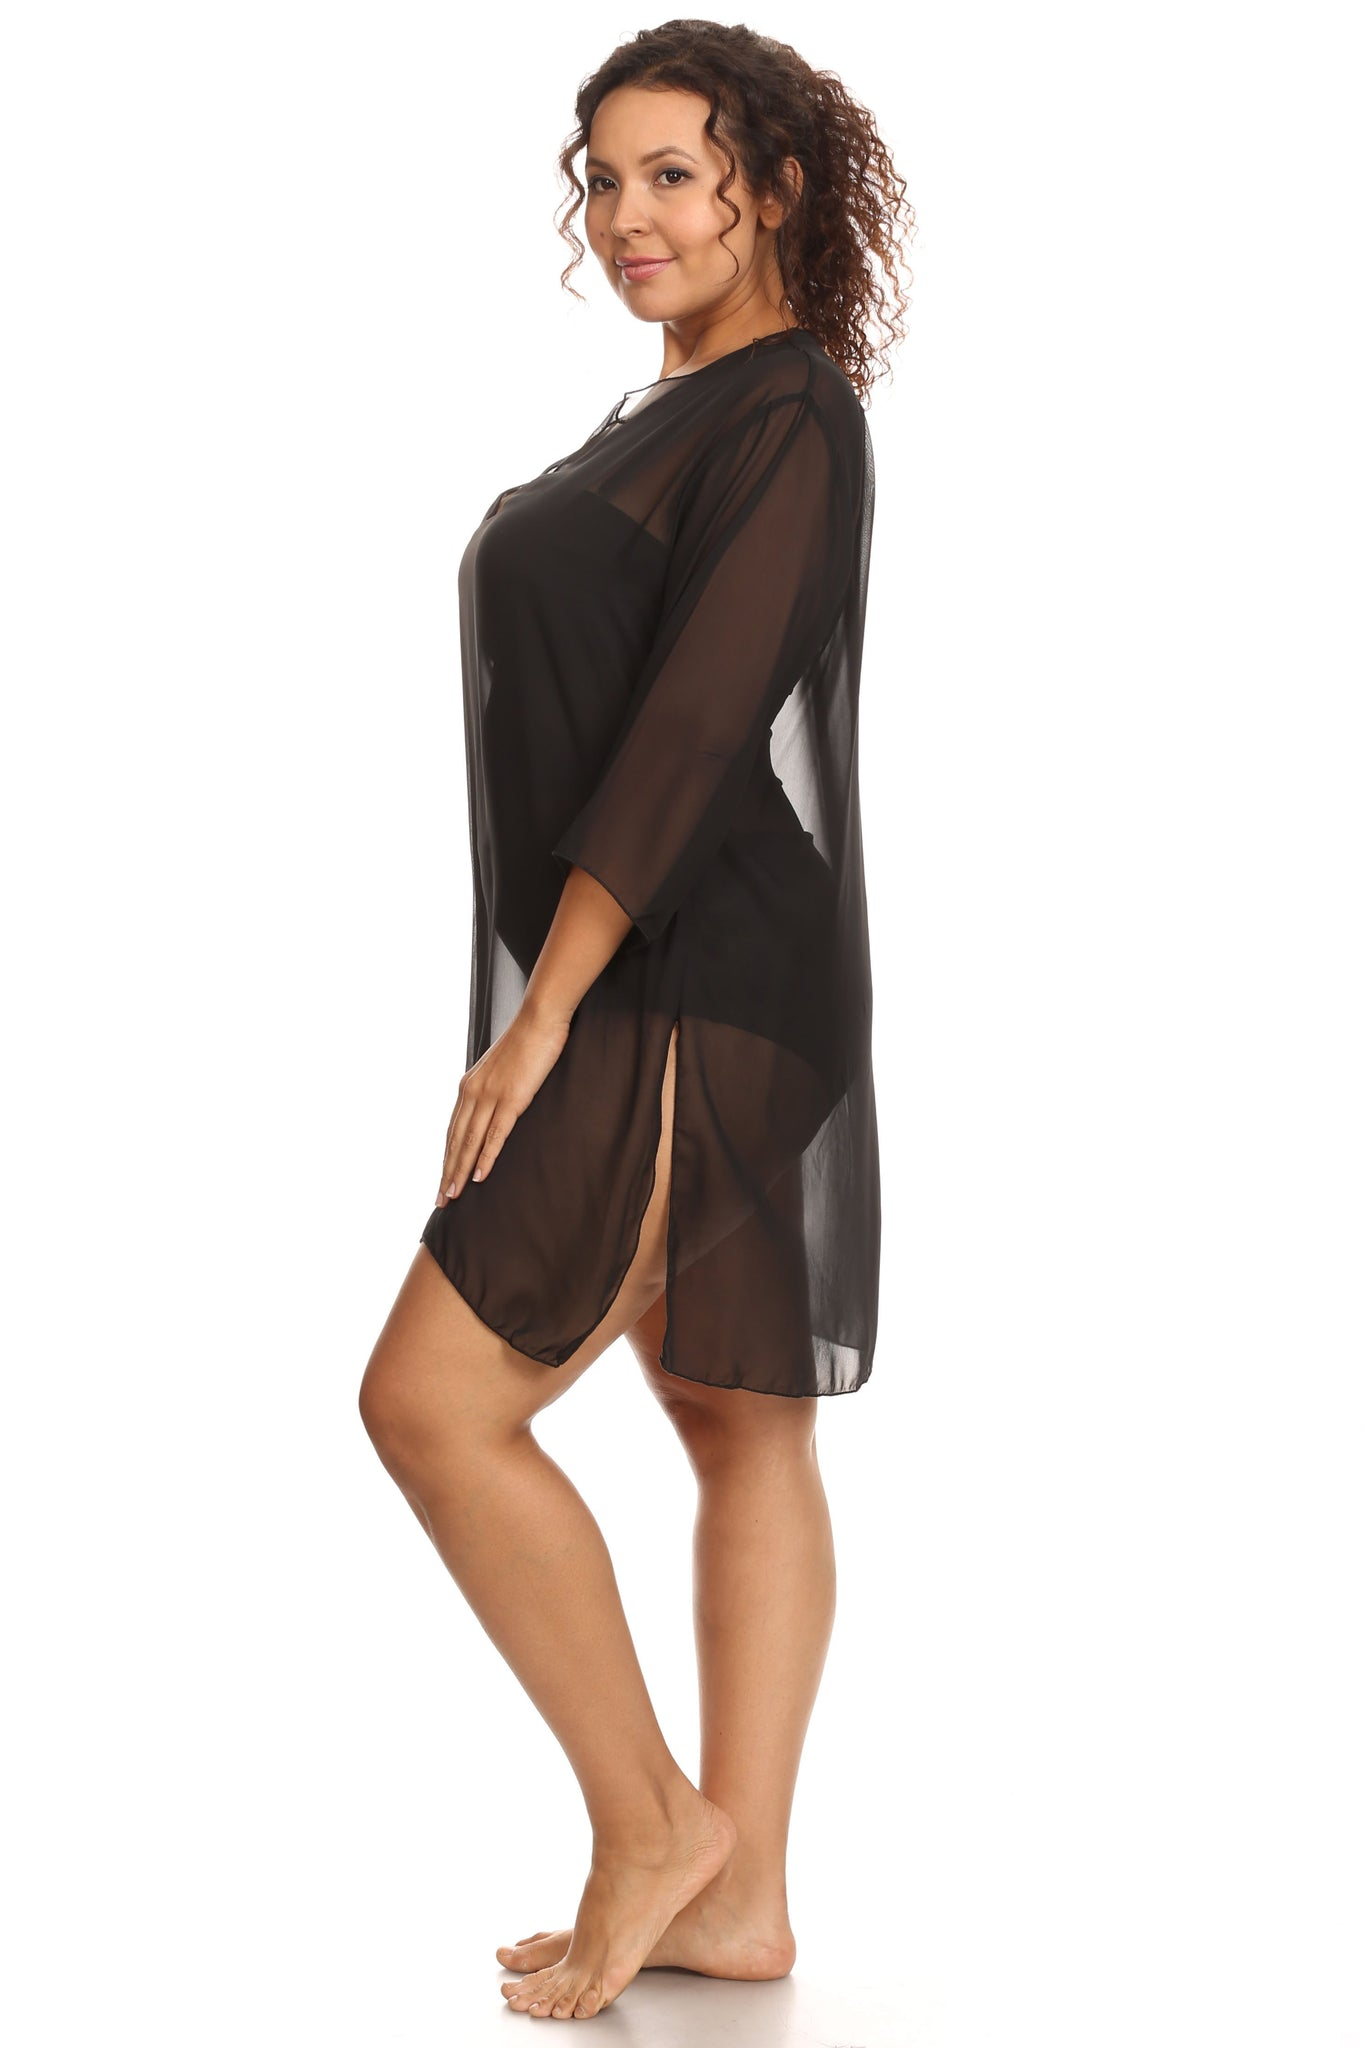 Plus Size Chiffon Long Sleeve Swimwear Cover-up Beach Dress Made in